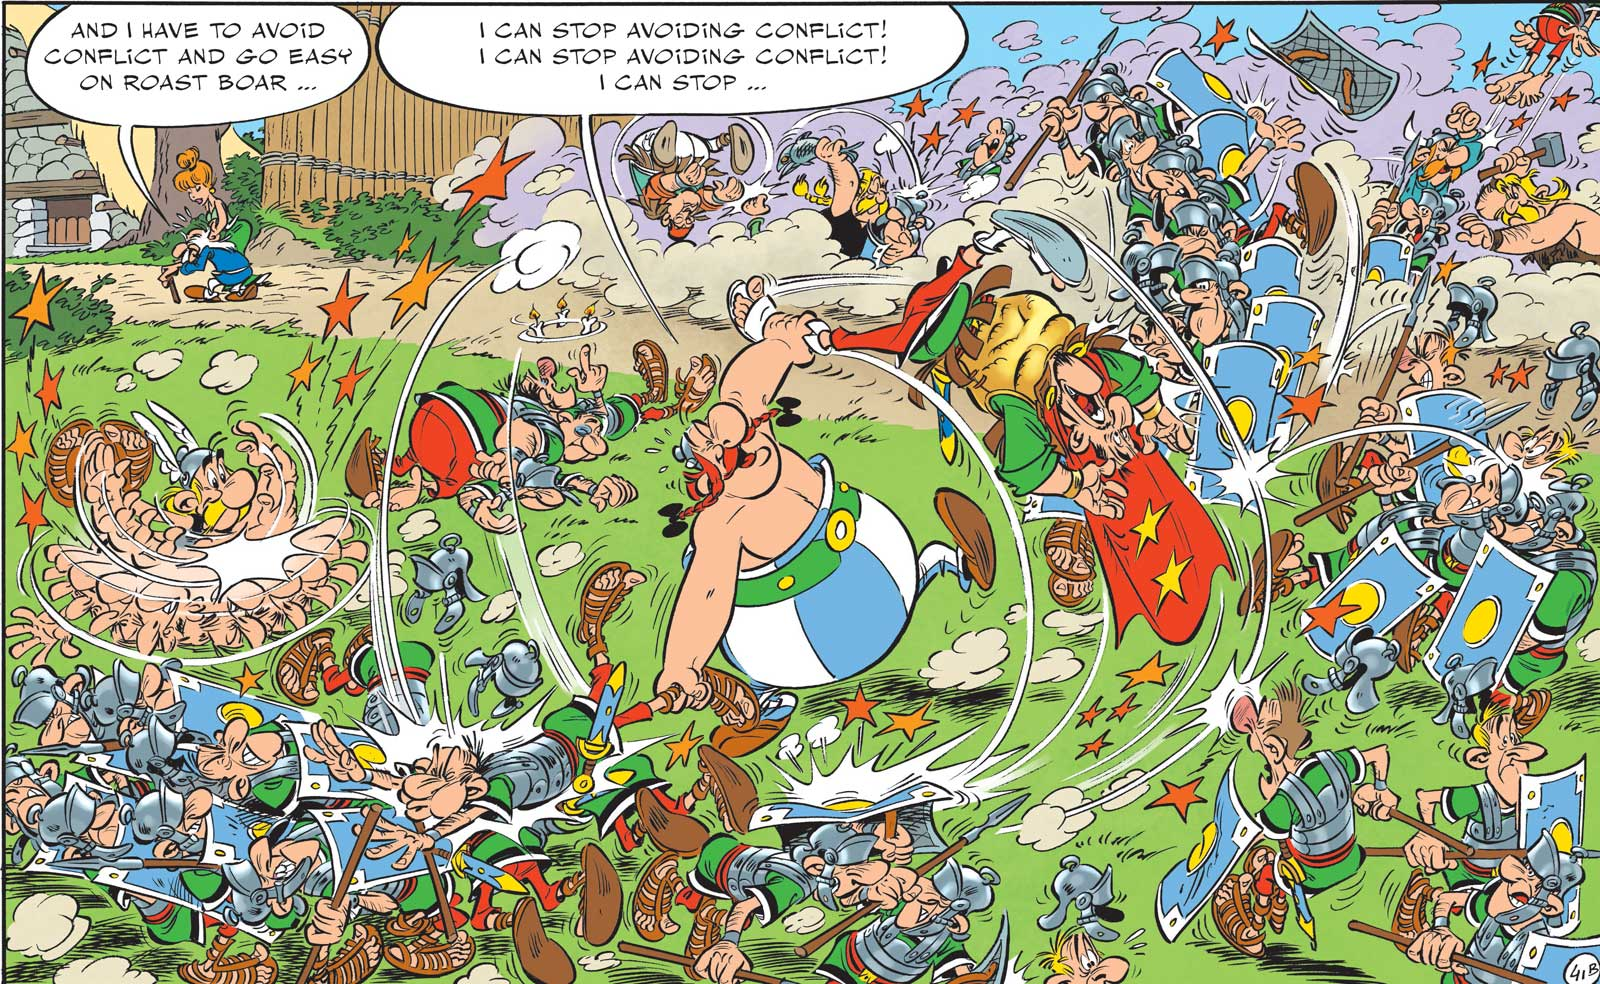 Art from Asterix and the Missing Scroll